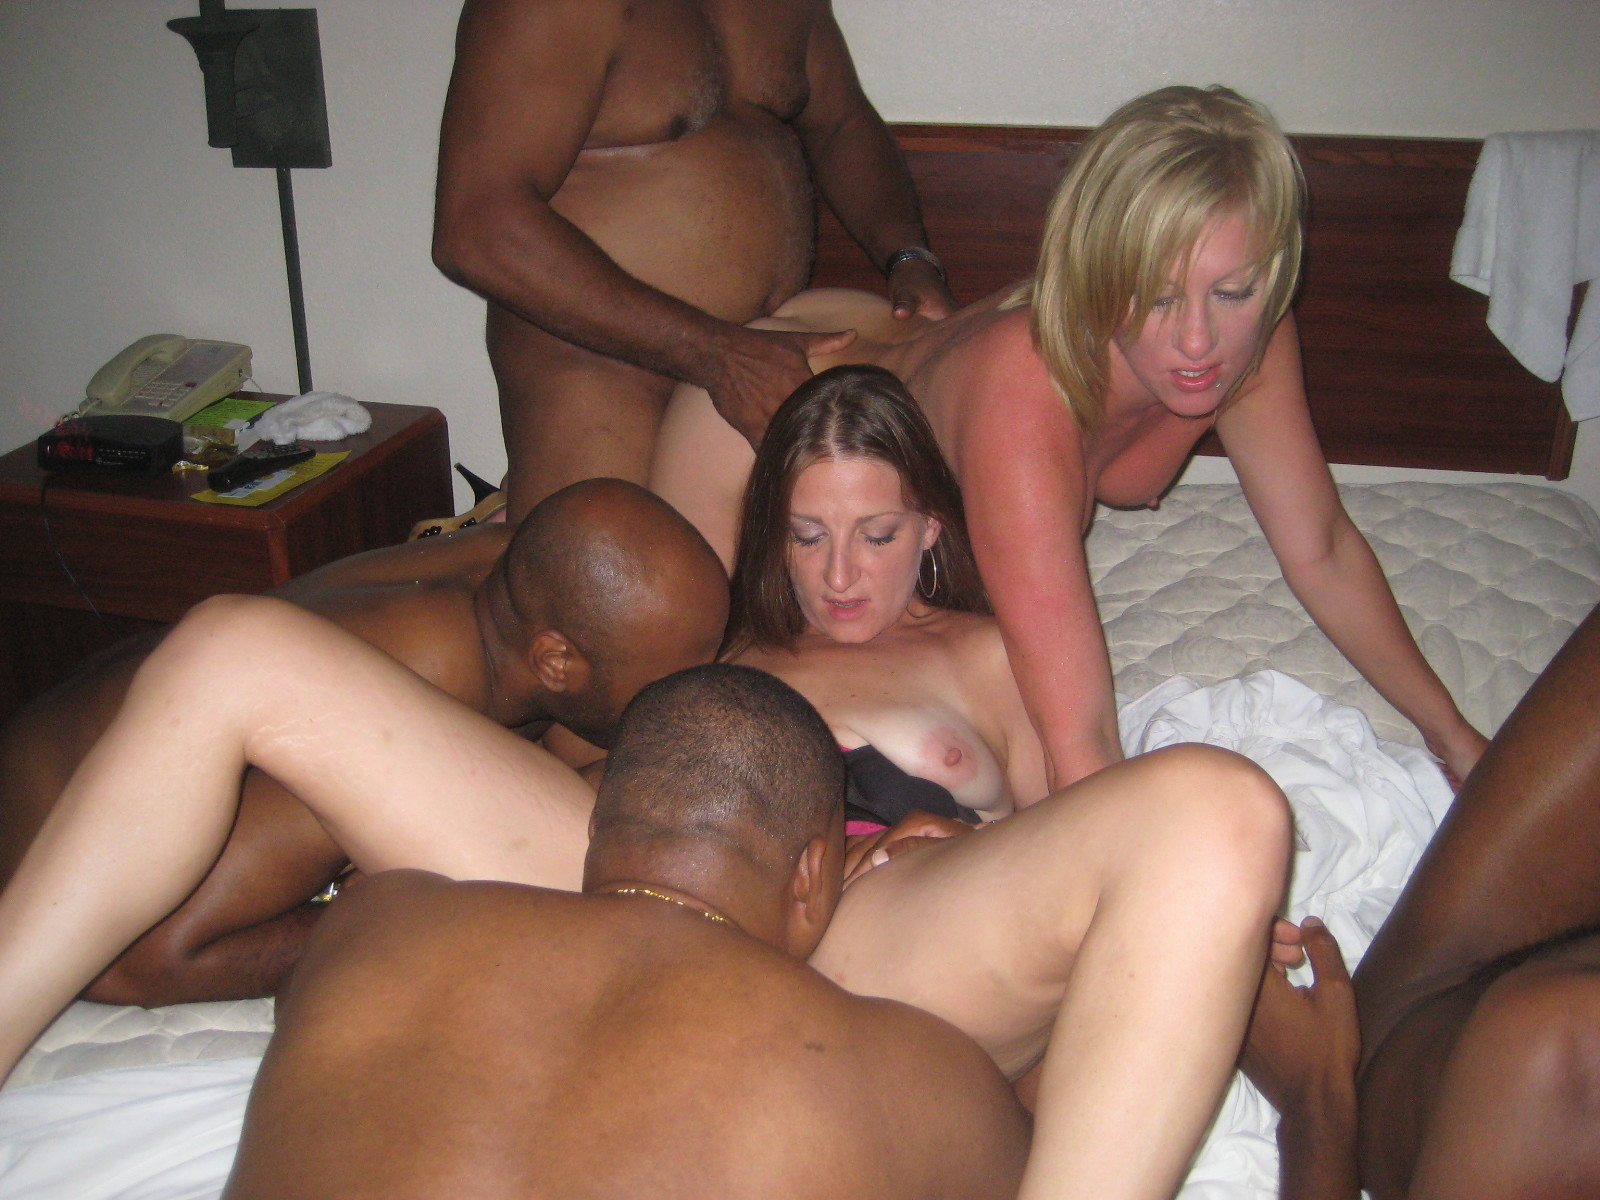 Theme interracial amateur wife swinger all does